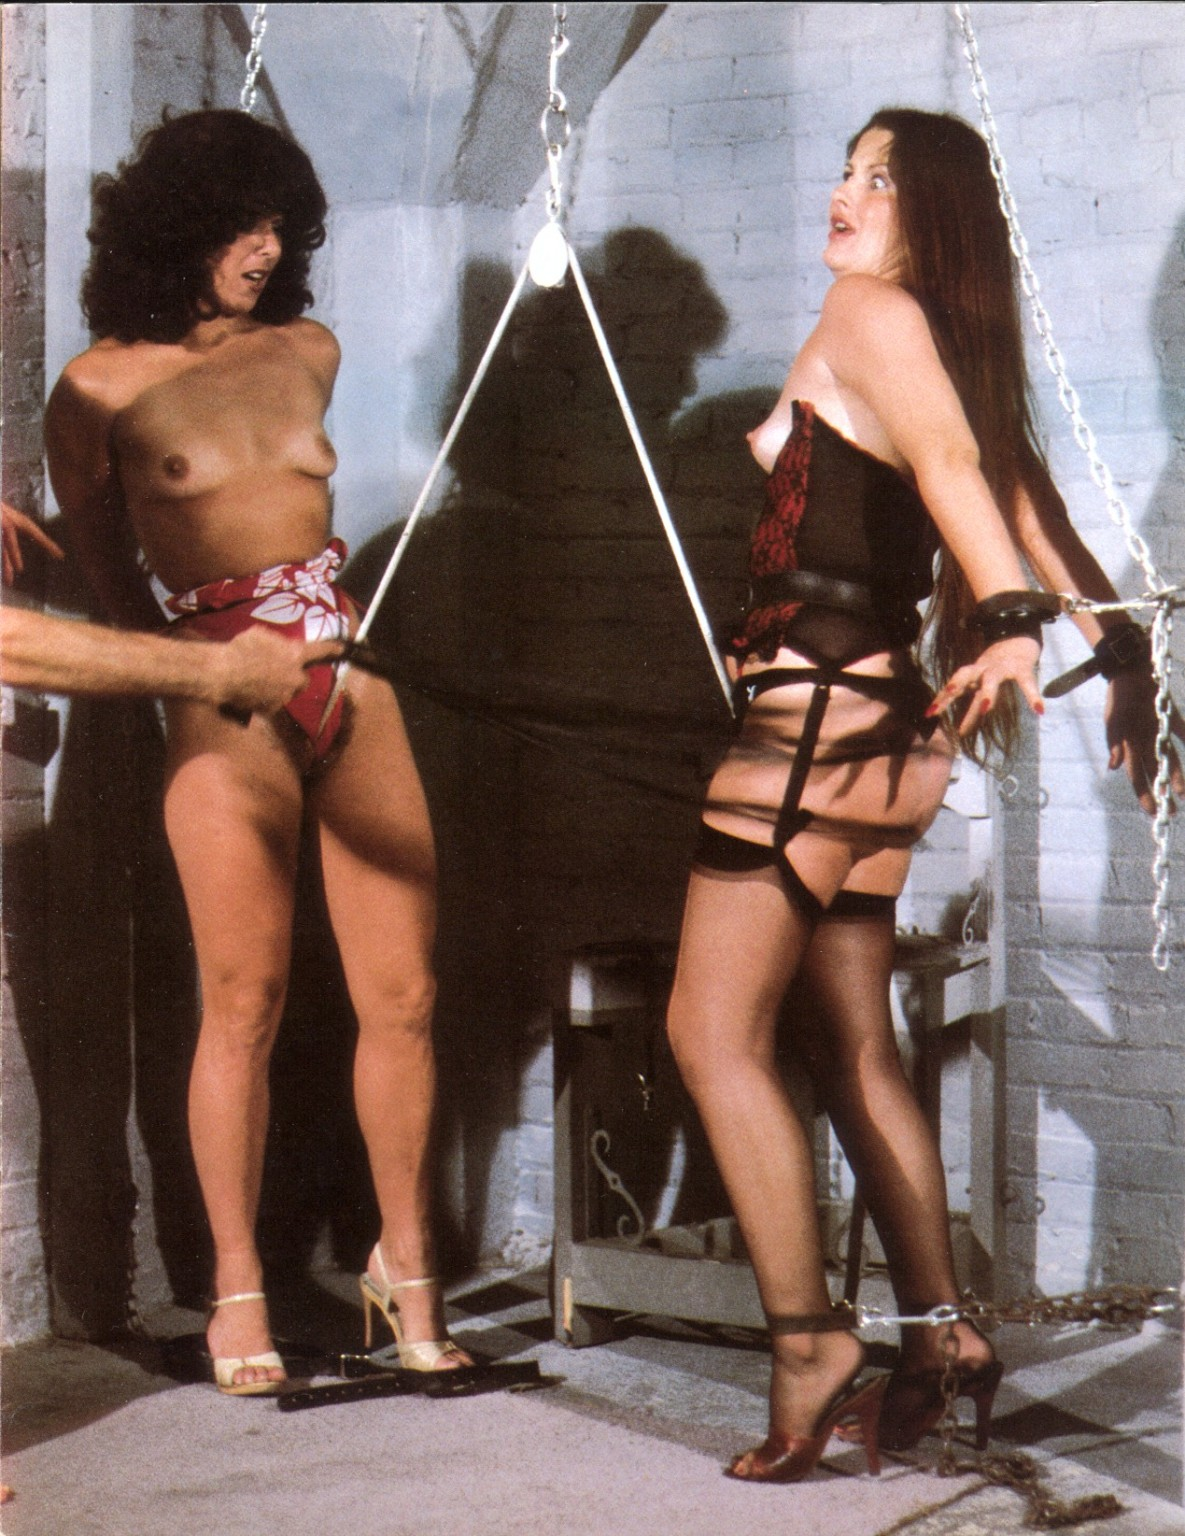 retro-bdsm-porno-video